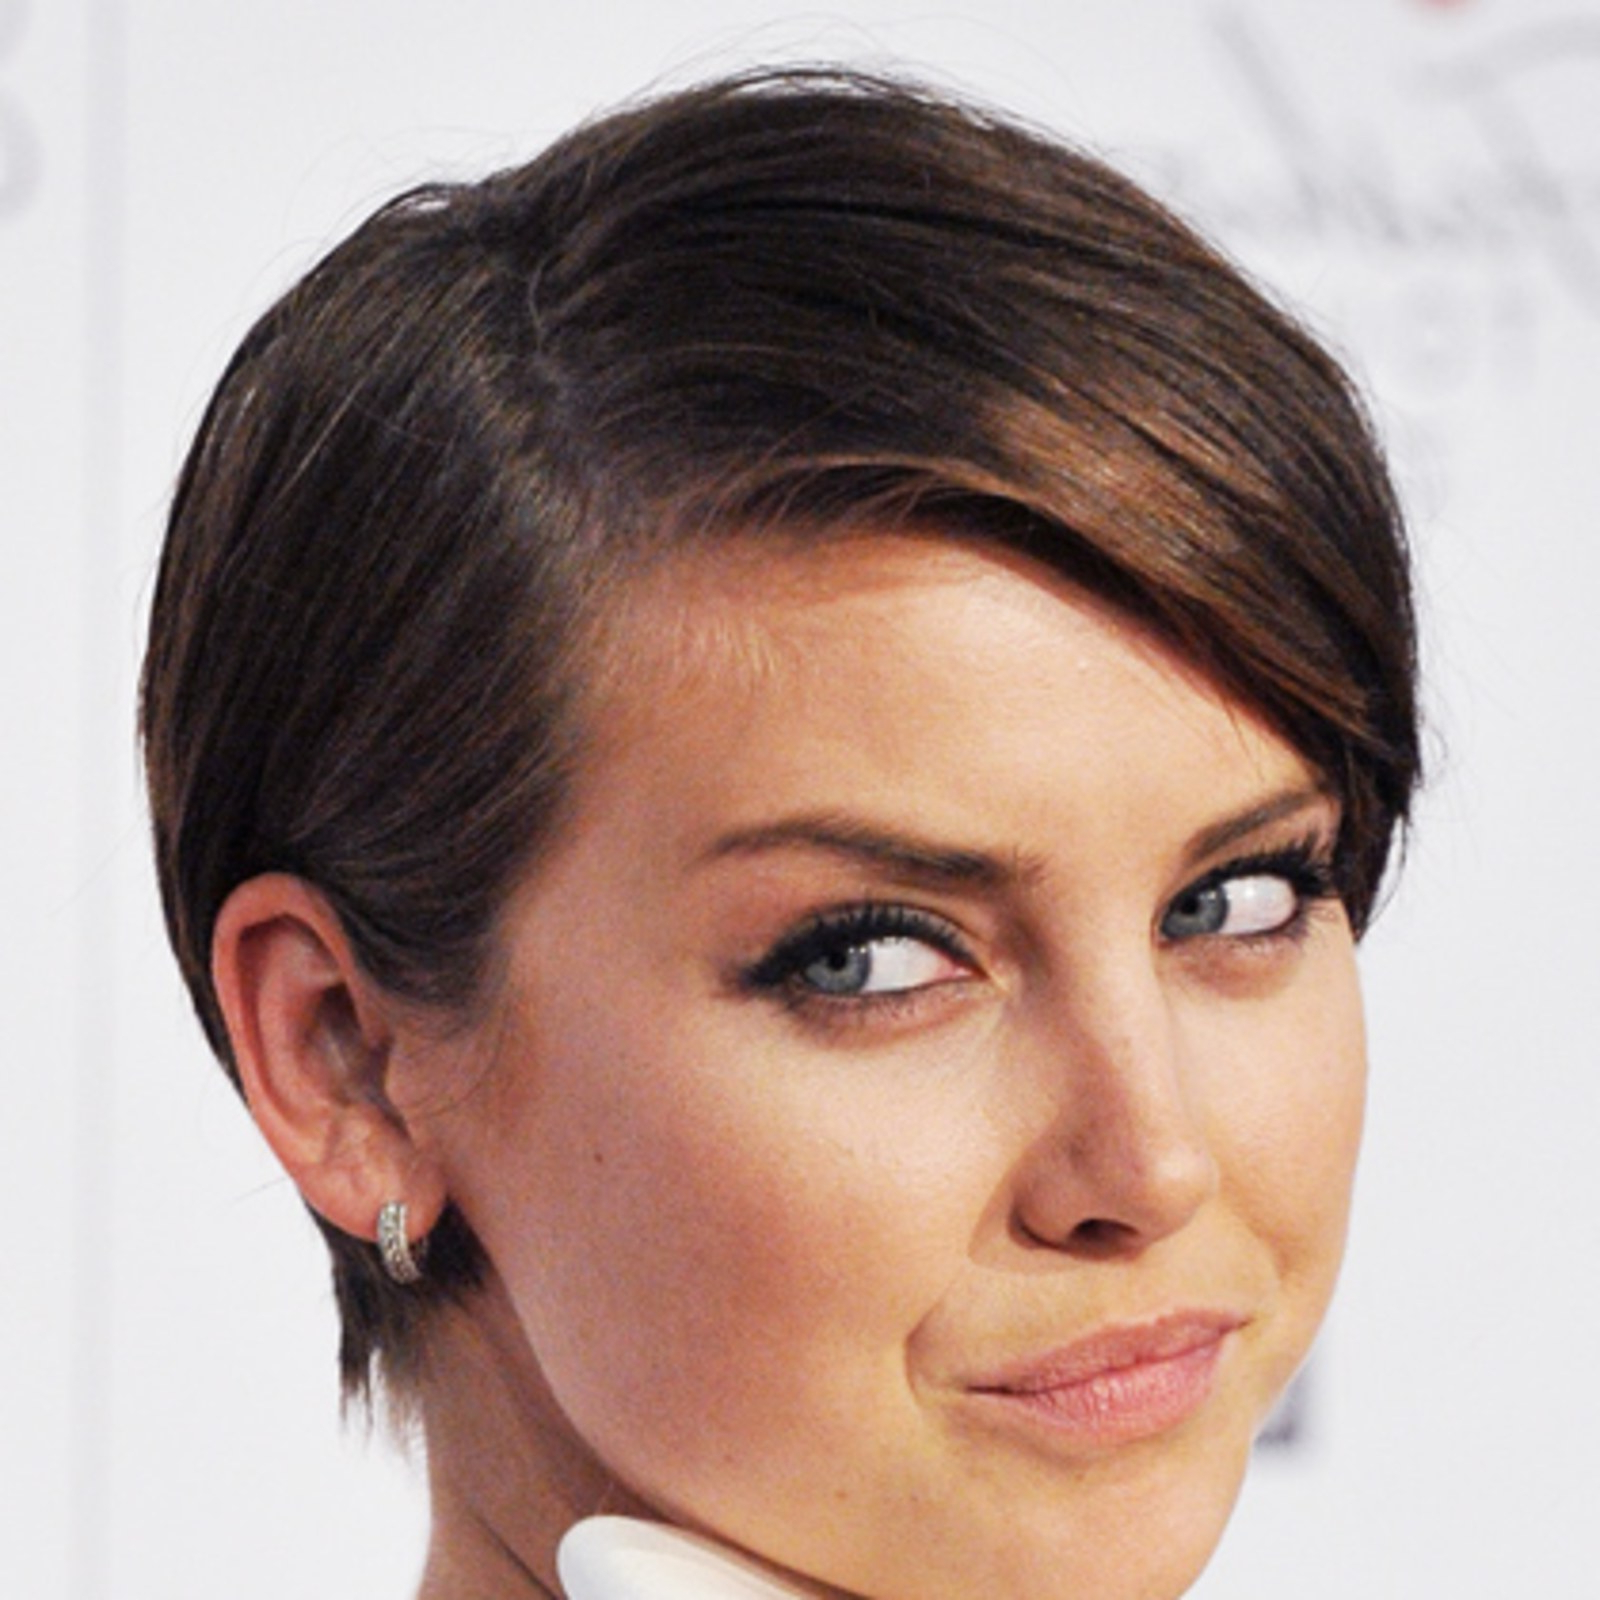 The Top 8 Haircuts For Heart Shaped Faces – Allure With Regard To Face Framing Short Hairstyles (View 18 of 25)